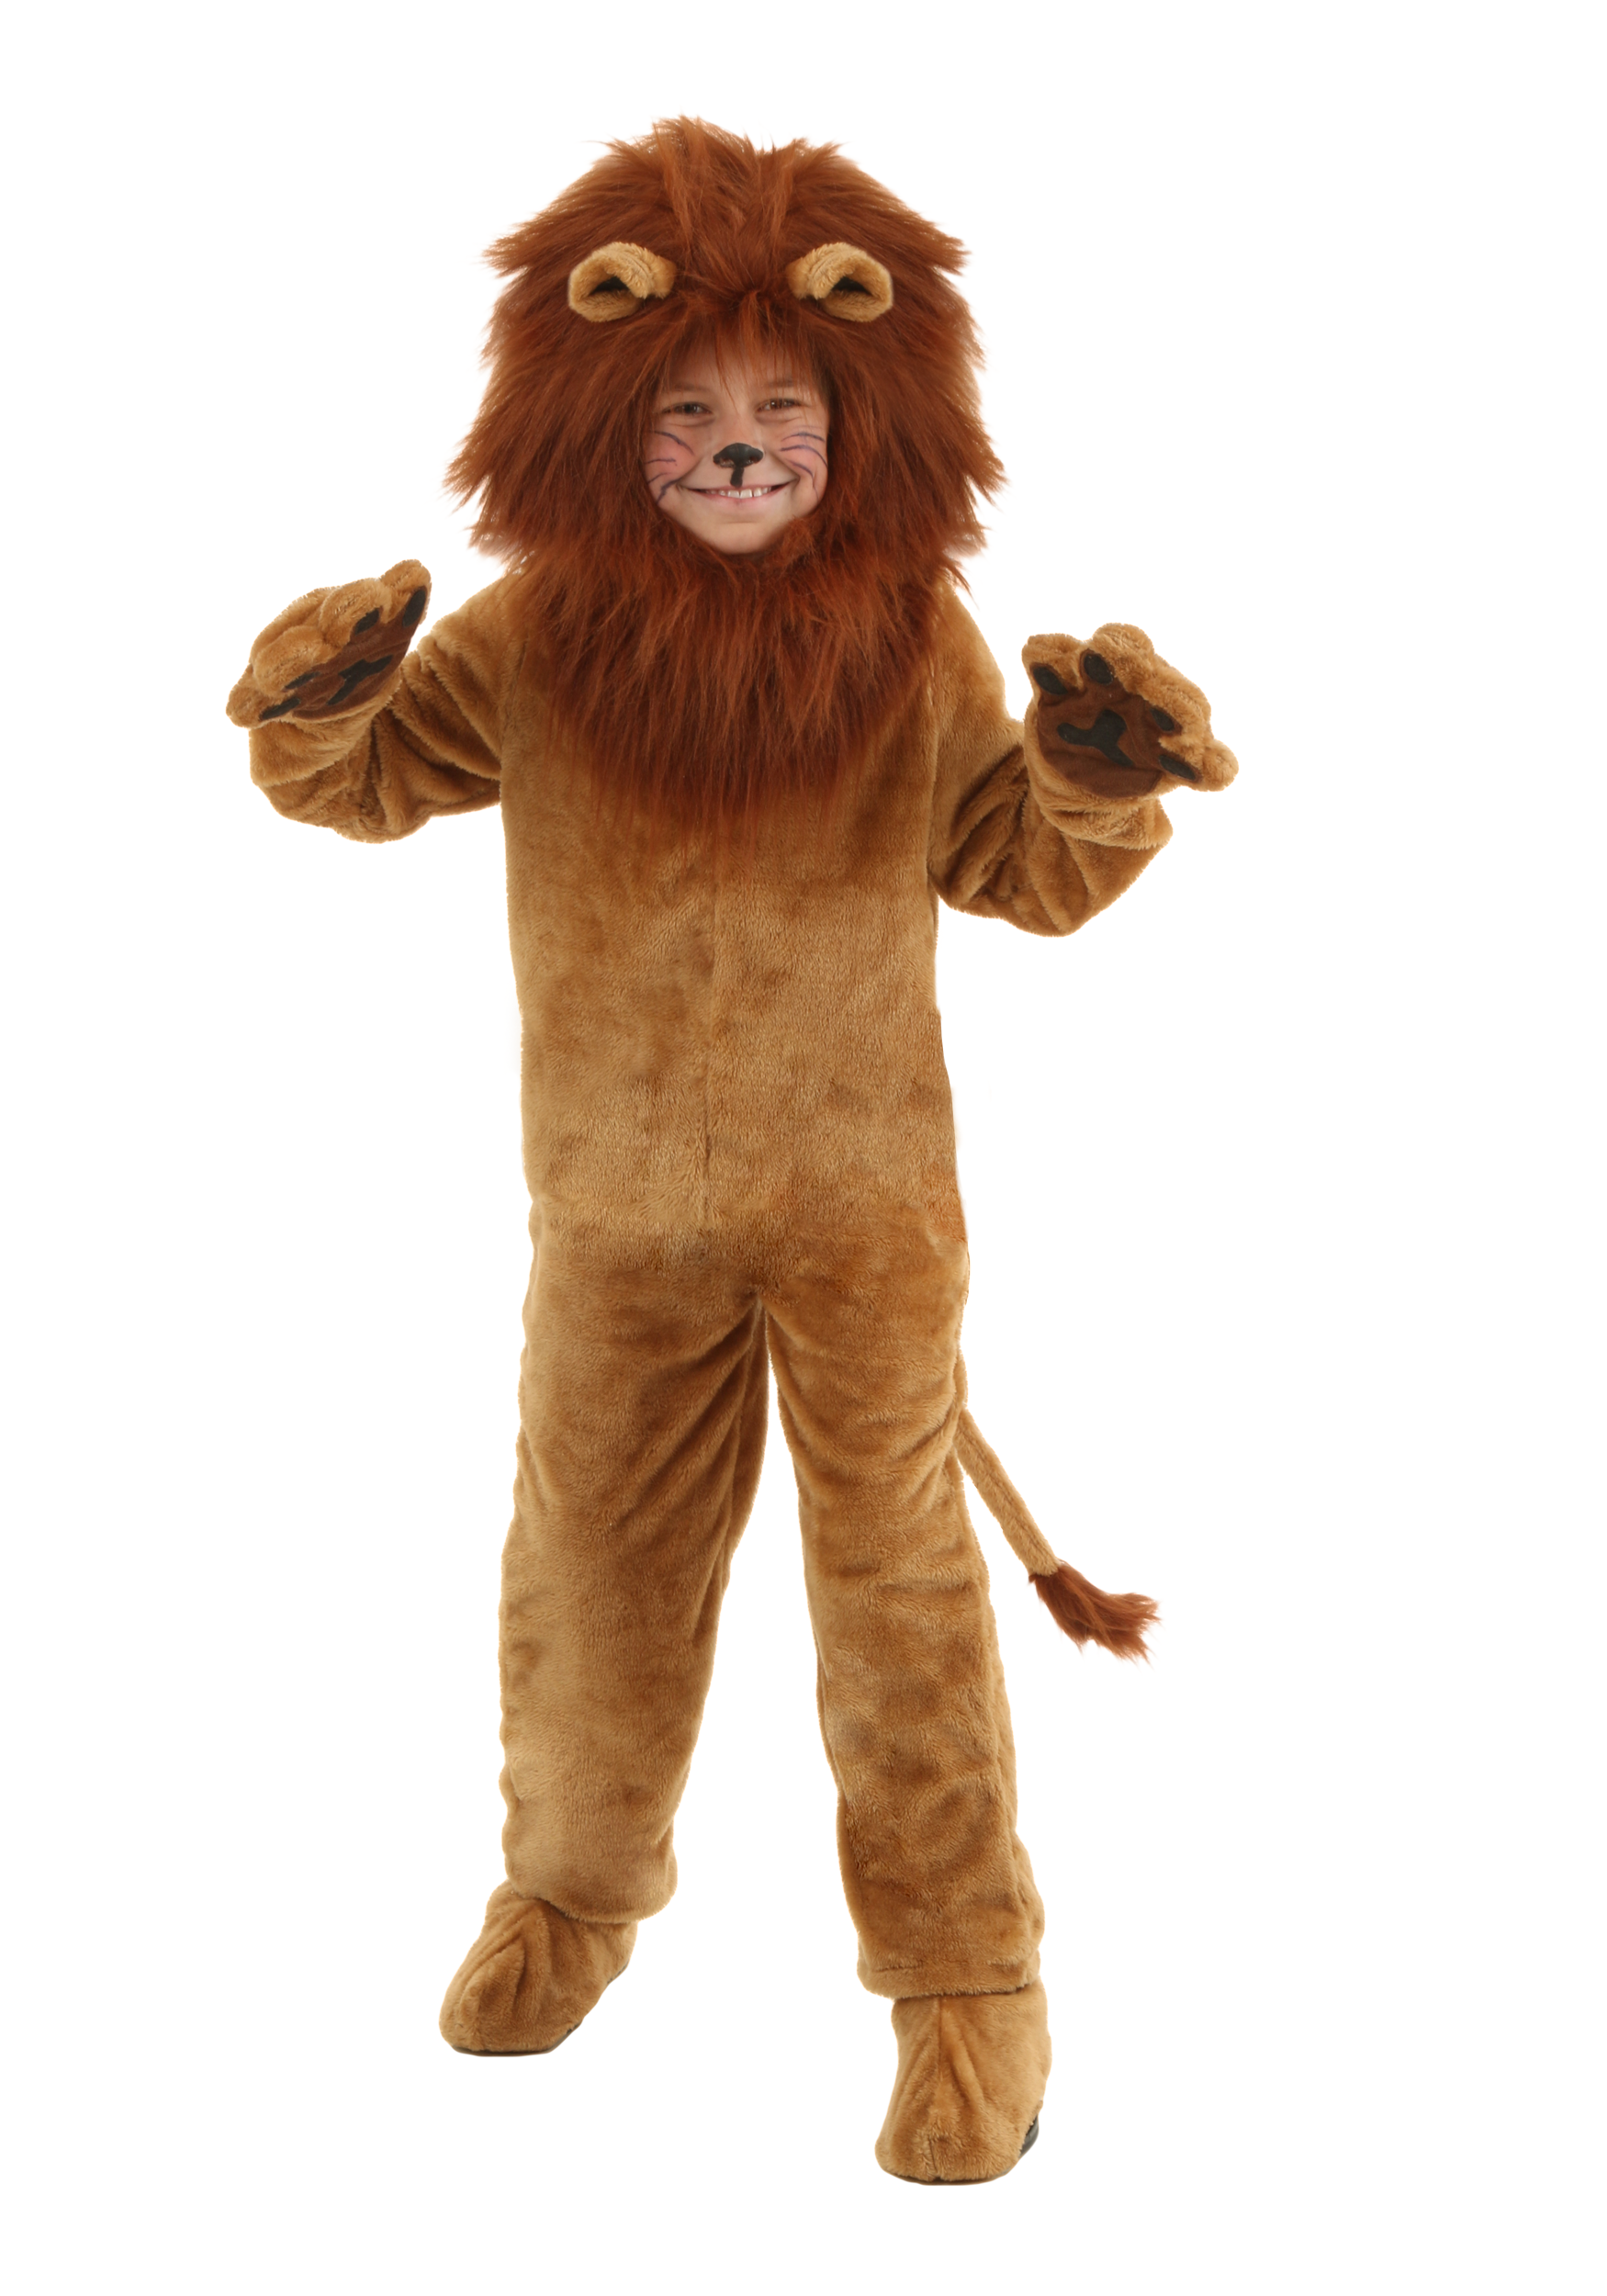 Animal Costumes For Adults & Kids - HalloweenCostumes.com